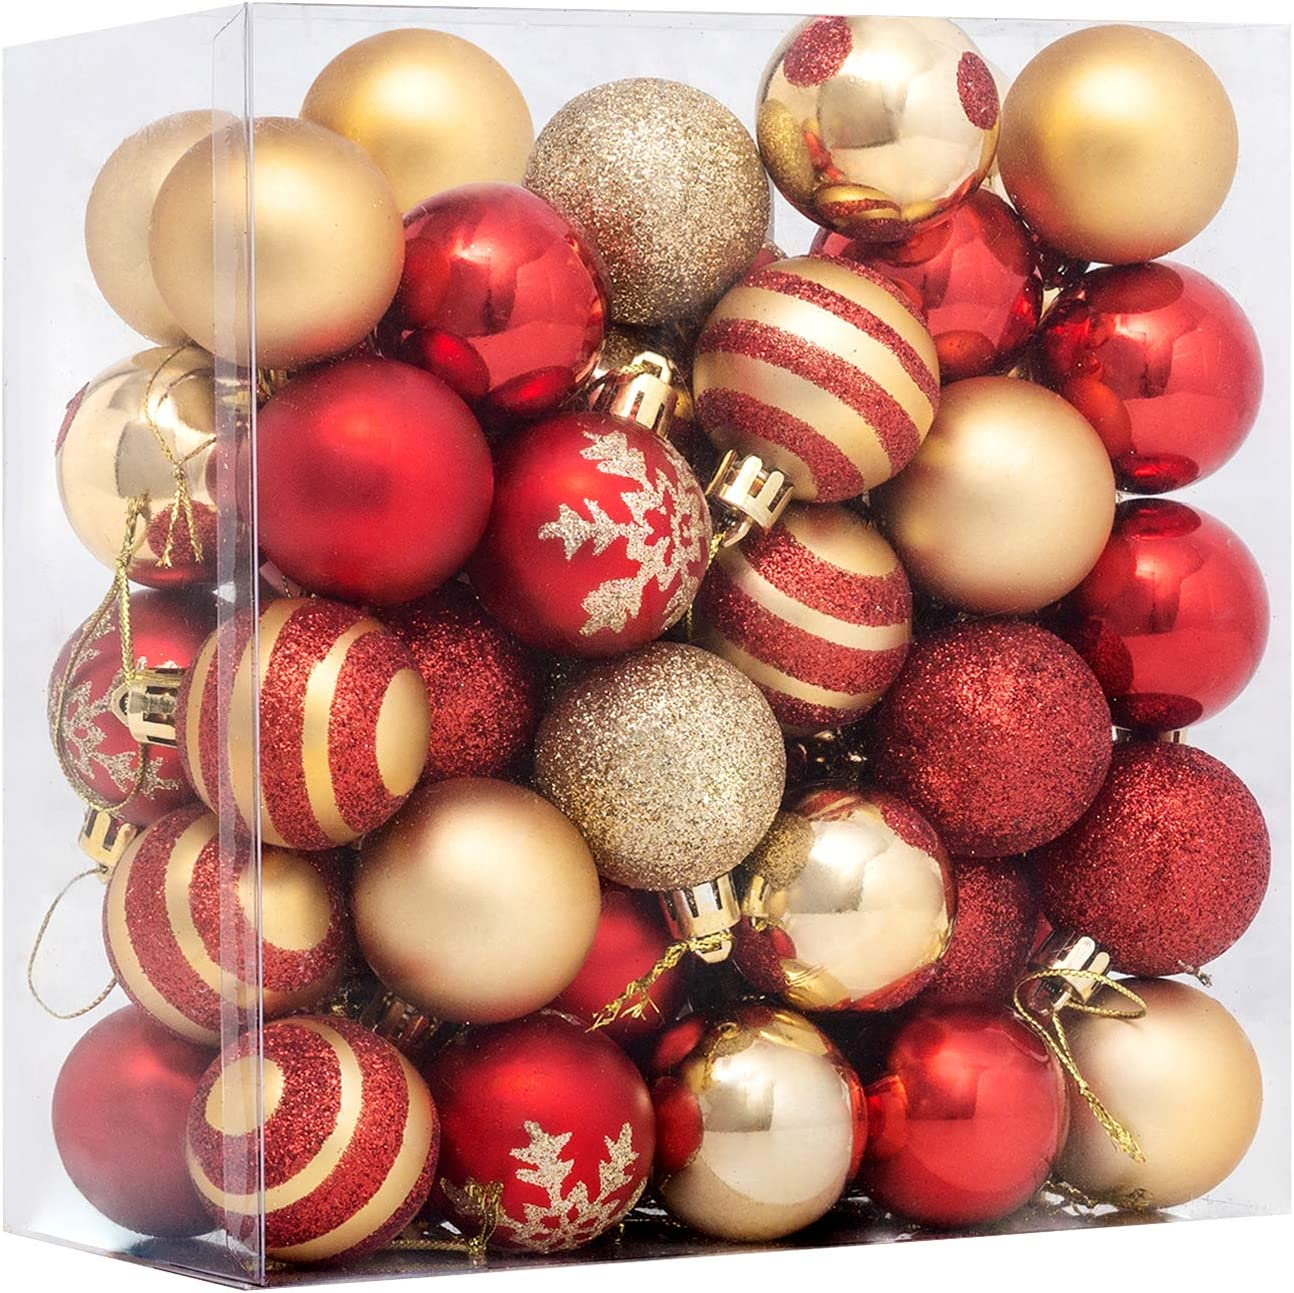 Funarty 50ct Christmas Ball Ornaments Shatterproof Christmas Tree Balls Decorations Small 40mm 1 57 For Tree Holiday Wedding Party Decorations Red And Gold Kitchen Dining